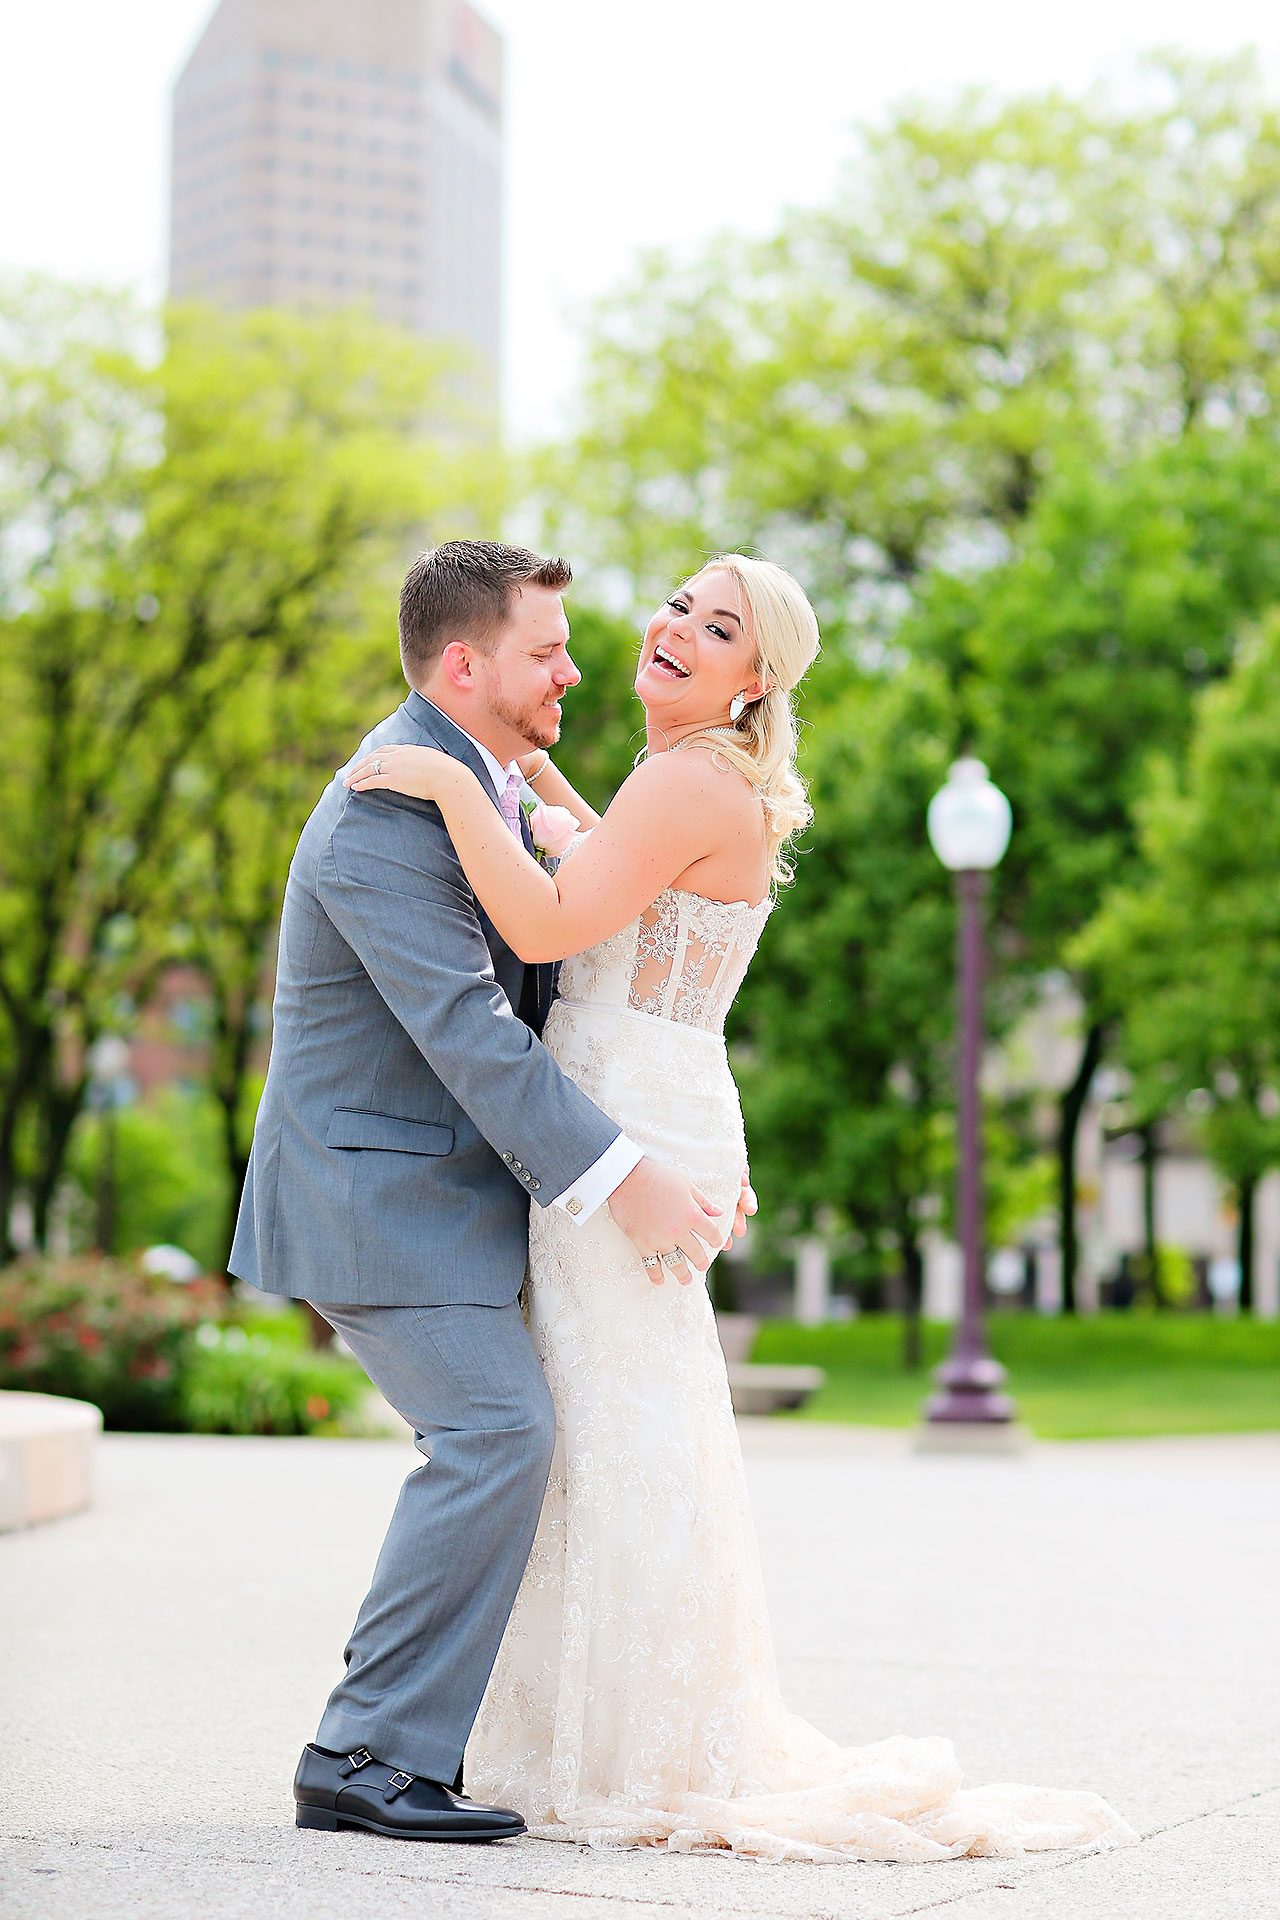 Lauren Bryan Scottish Rite Indianapolis Wedding 151